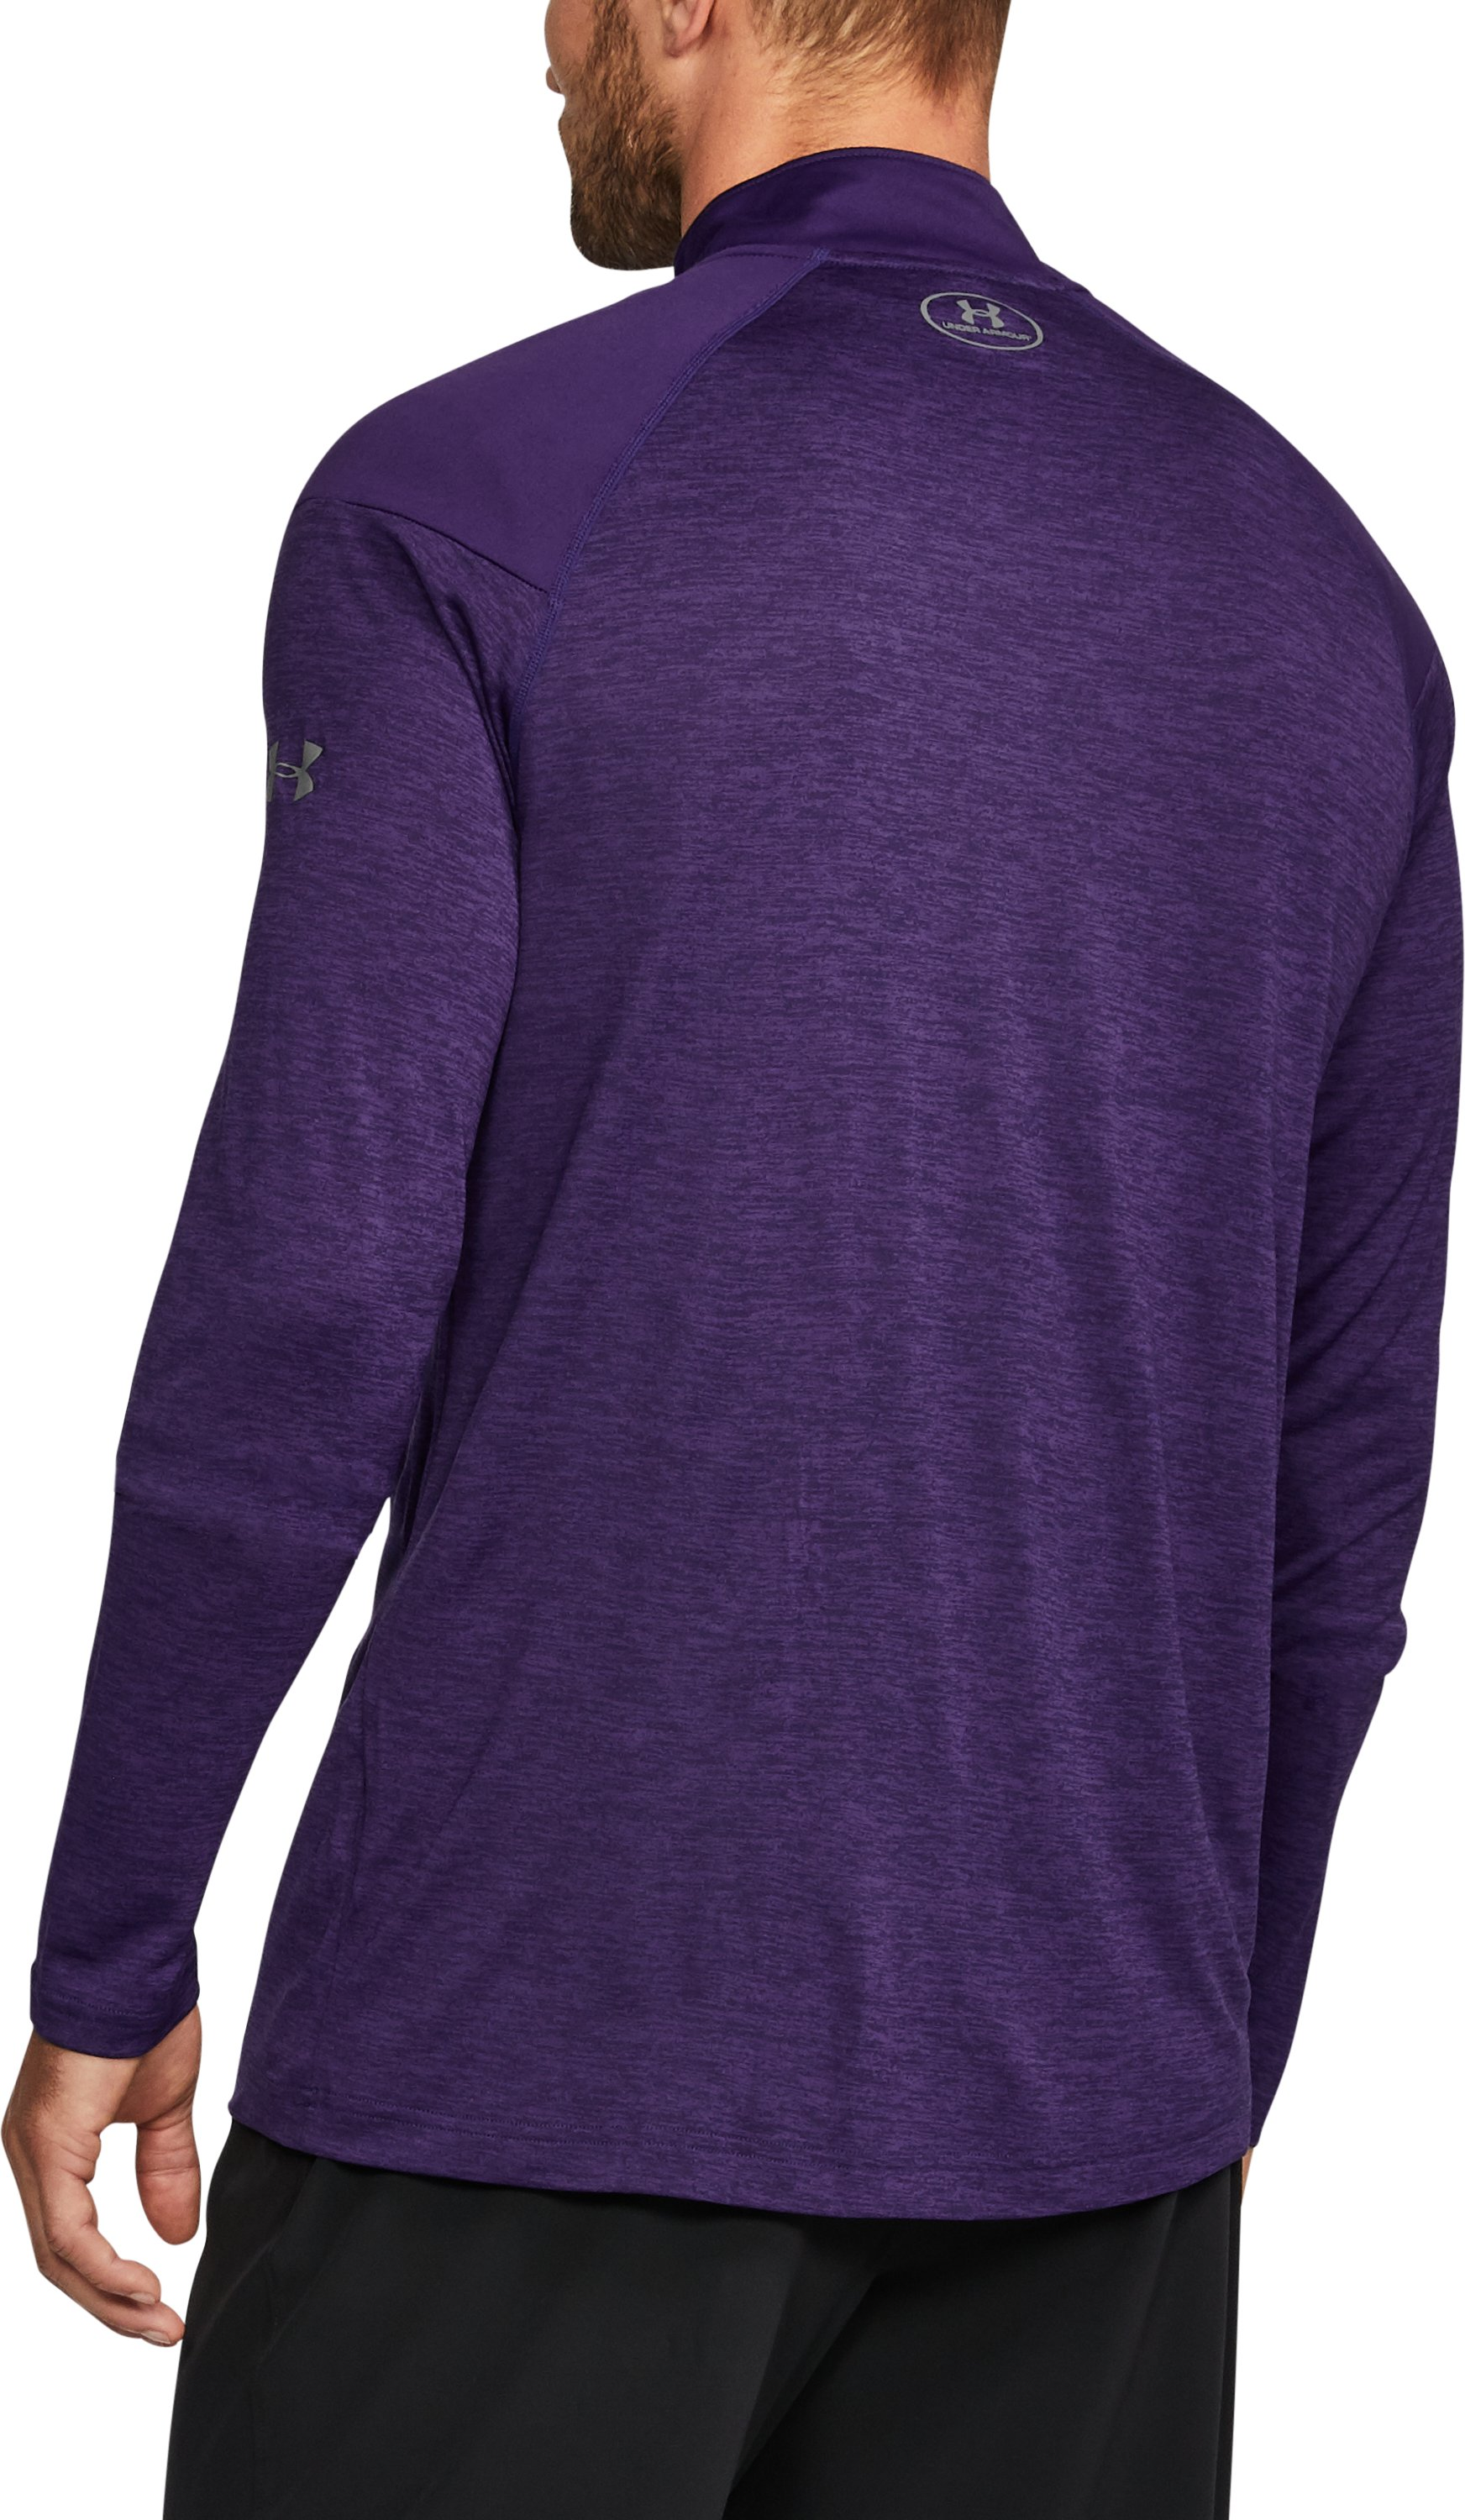 Men's Northwestern ¼ Zip, Purple, undefined